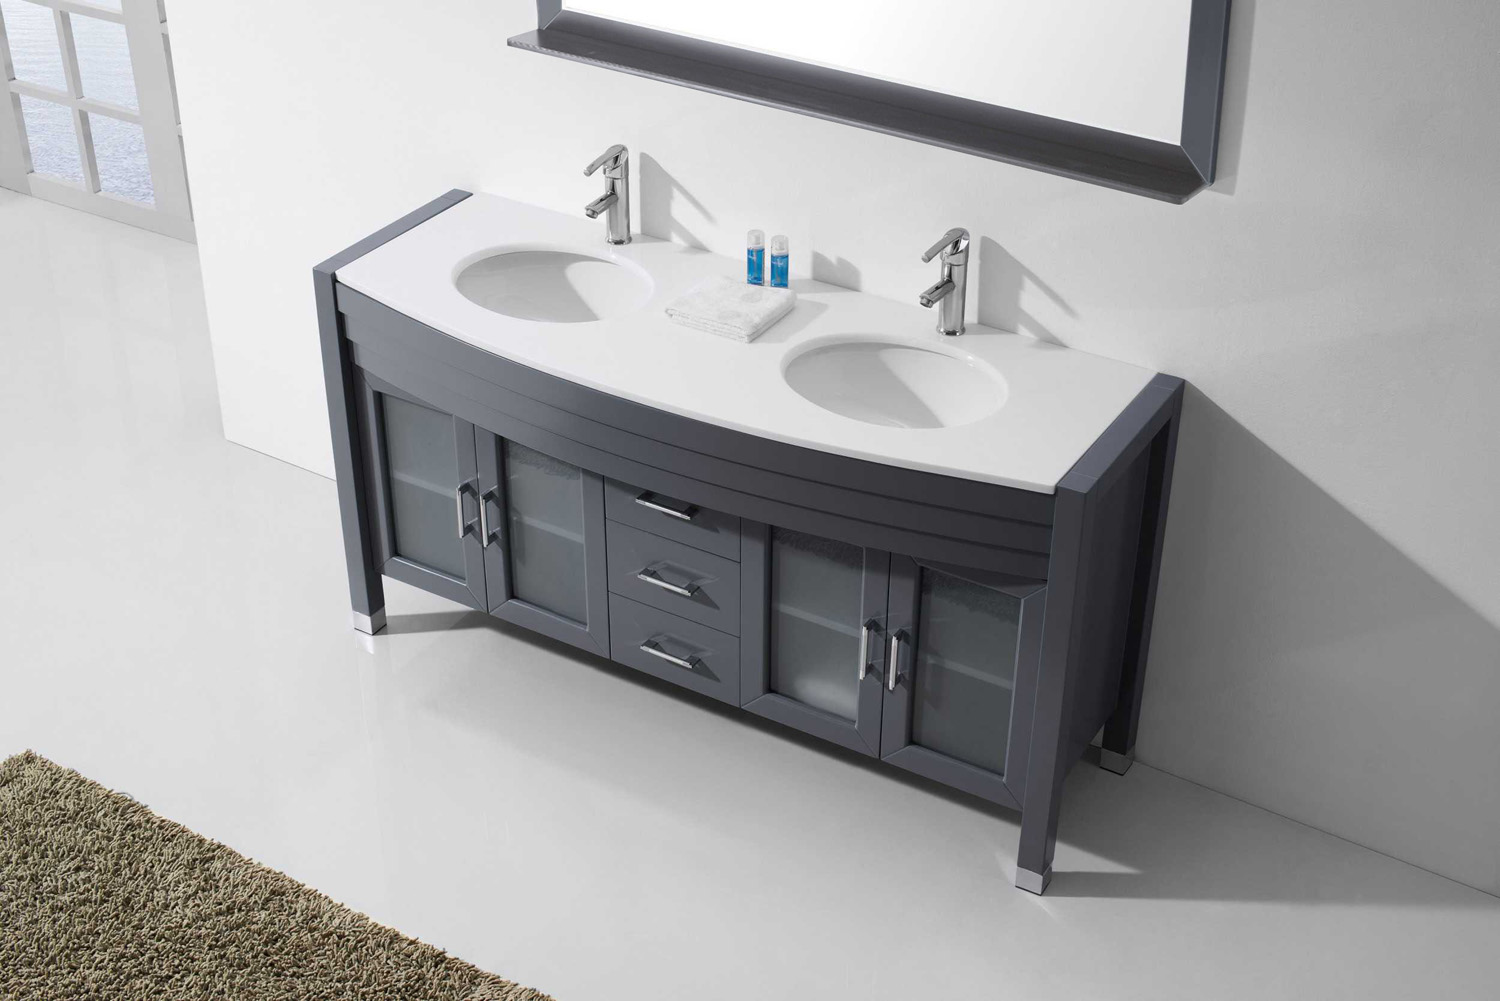 Pros and Cons of Double Sink vs Single Sink Vanities